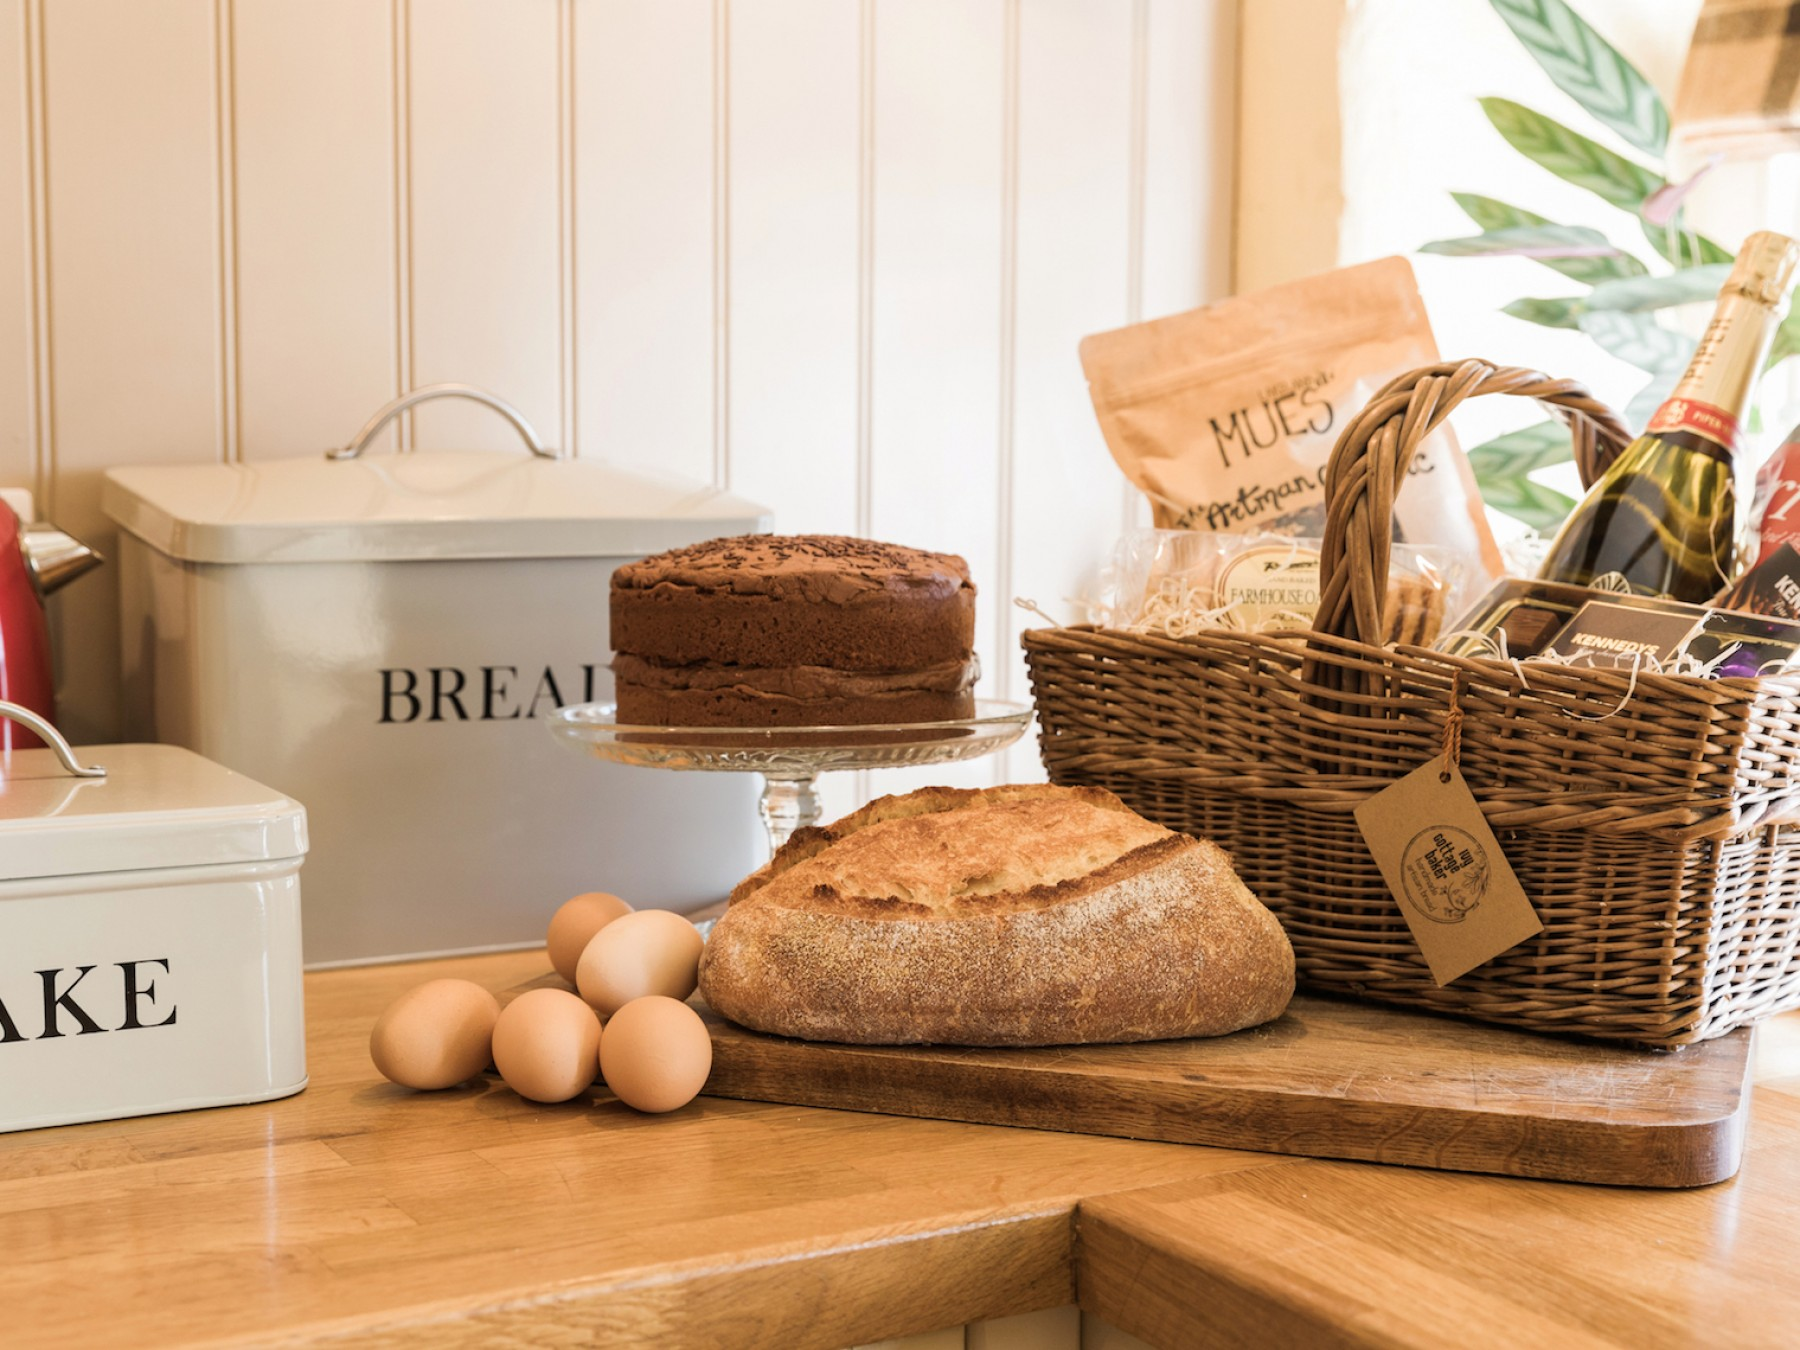 Delicious locally made goodies in the welcome hamper